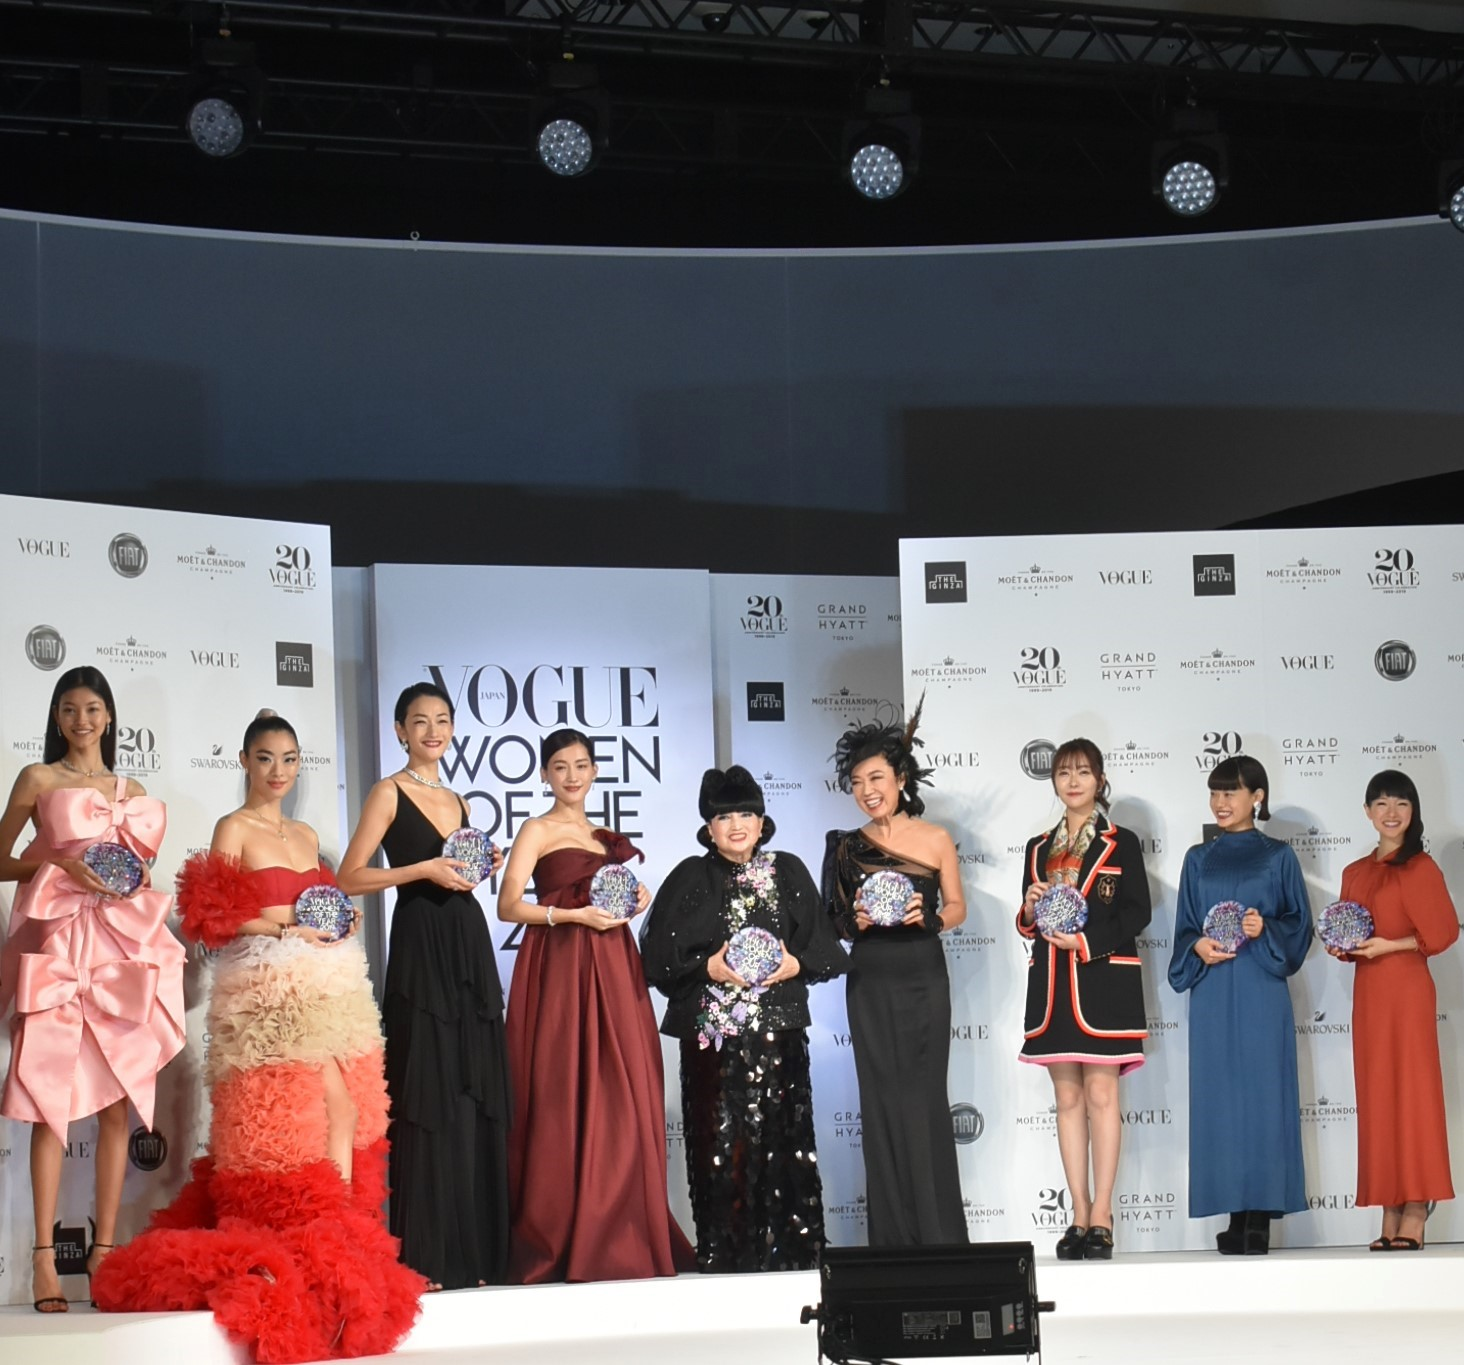 「VOGUE JAPAN WOMEN OF THE YEAR 2019」授賞式・記者会見 受賞者たち